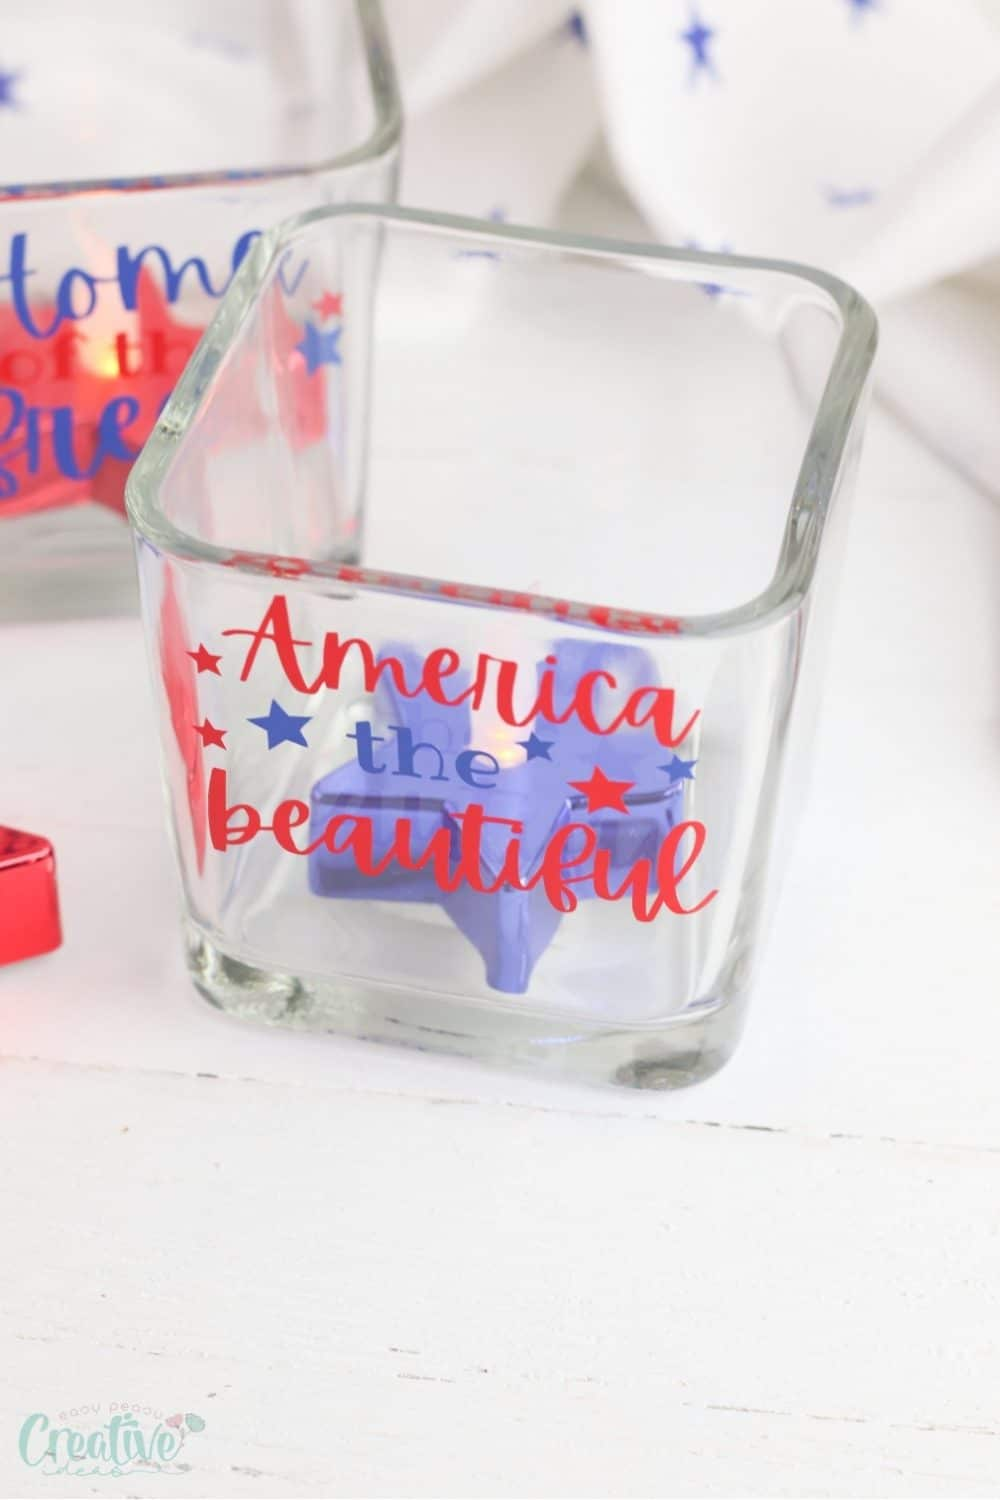 Candle holder ideas